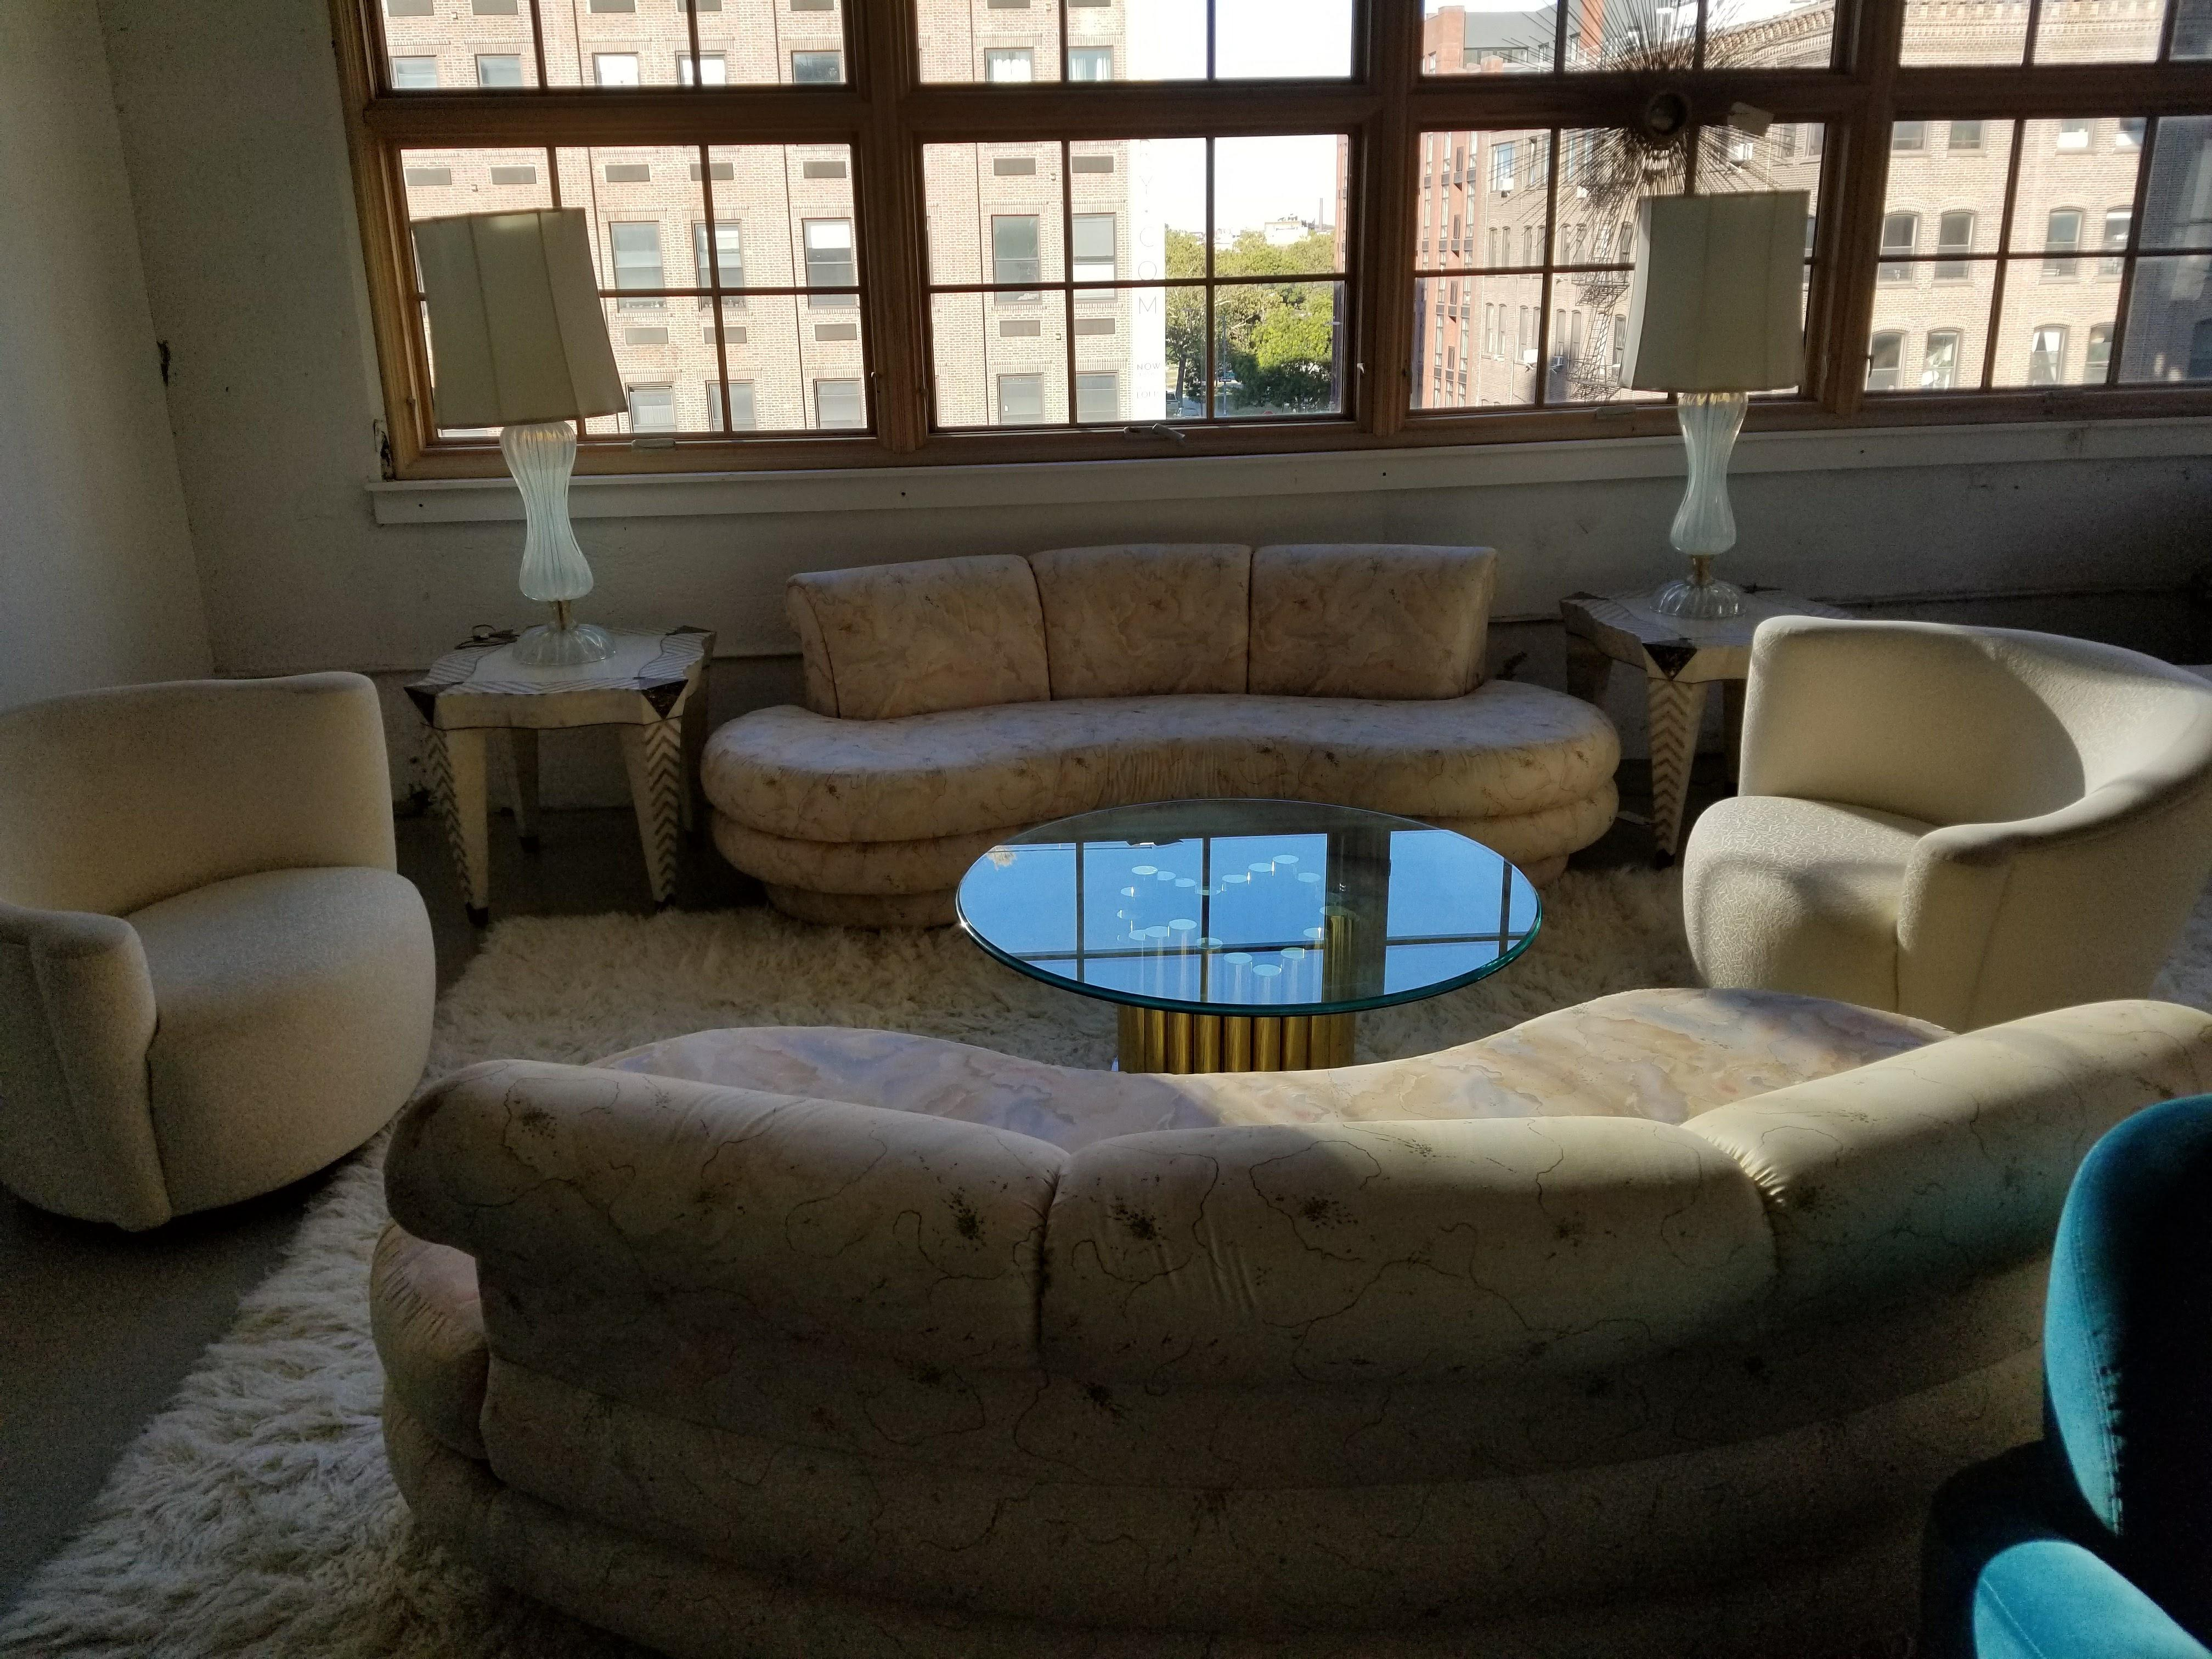 Ordinaire Adrian Pearsall For Comfort Designs Curved Kidney Shaped Sofa/ Final  Markdown For Sale   Image